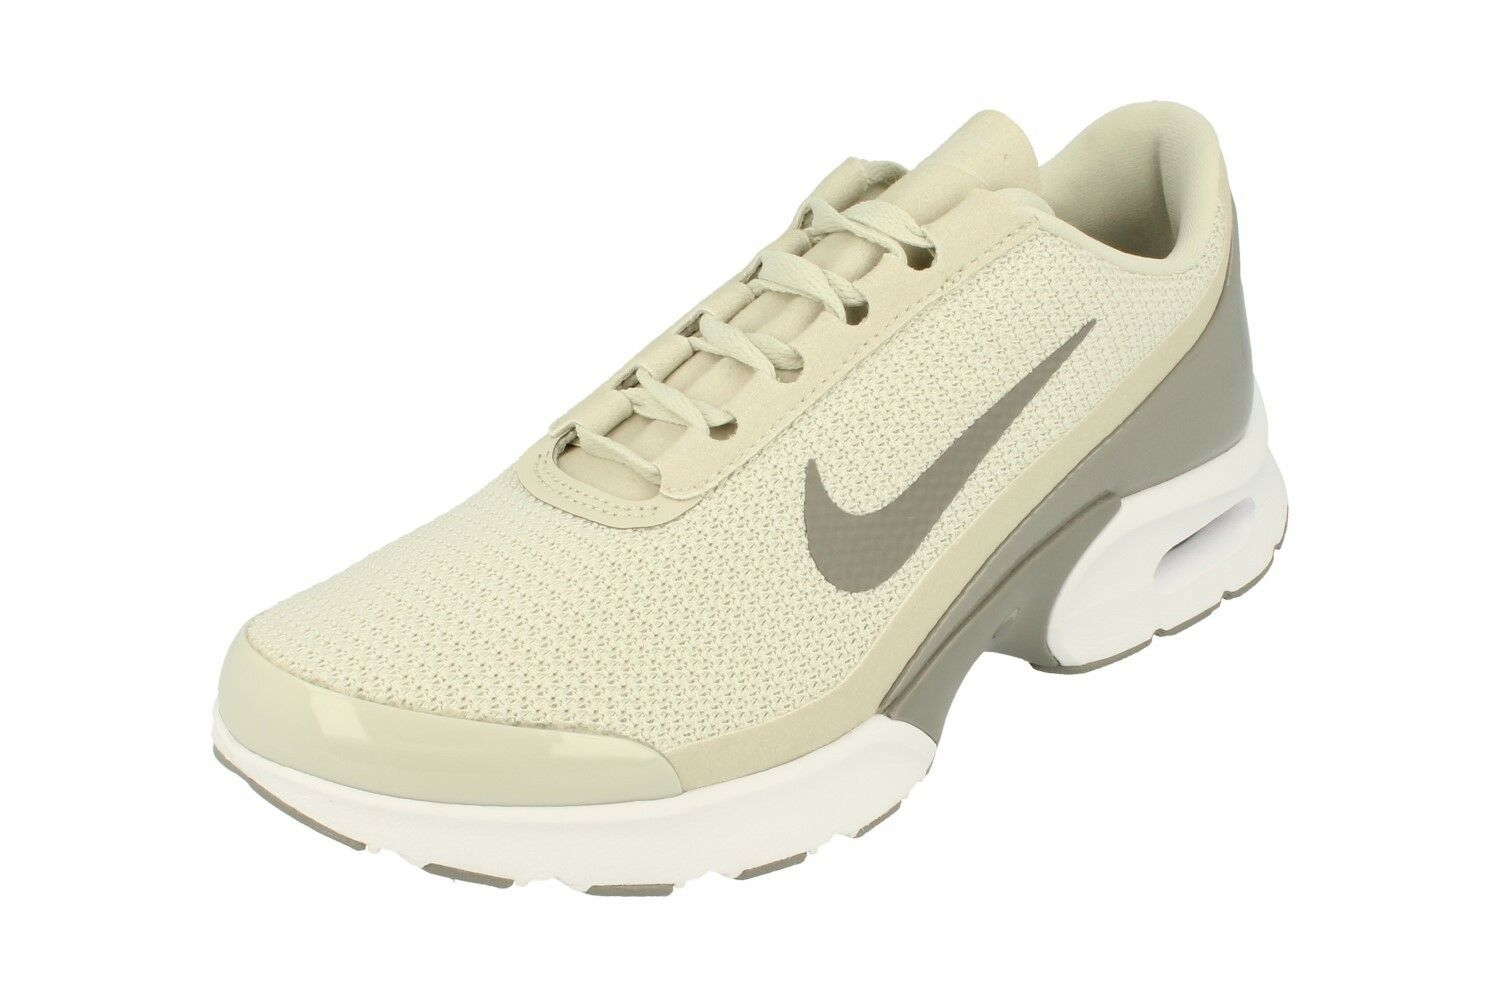 Nike Womens Air Max Jewel Running Trainers 896194 Sneakers Shoes 002 Seasonal price cuts, discount benefits